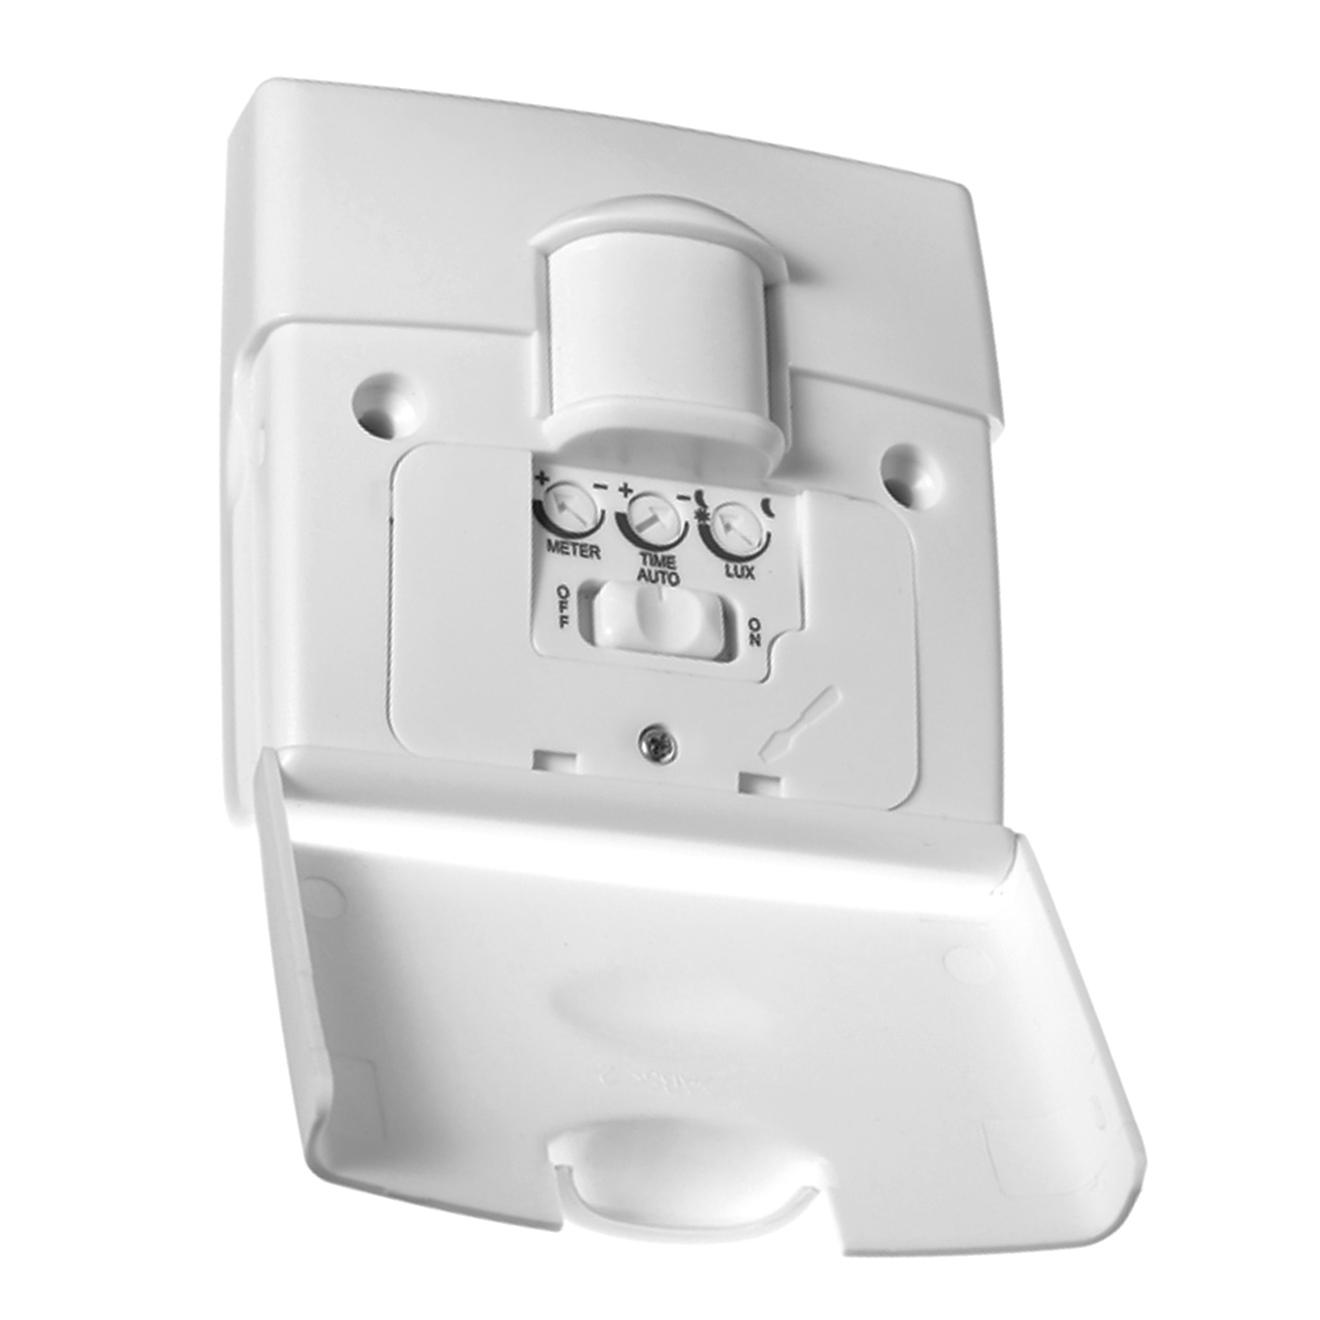 180 176 Motion Sensor Pir Light Switch White 500w Mr